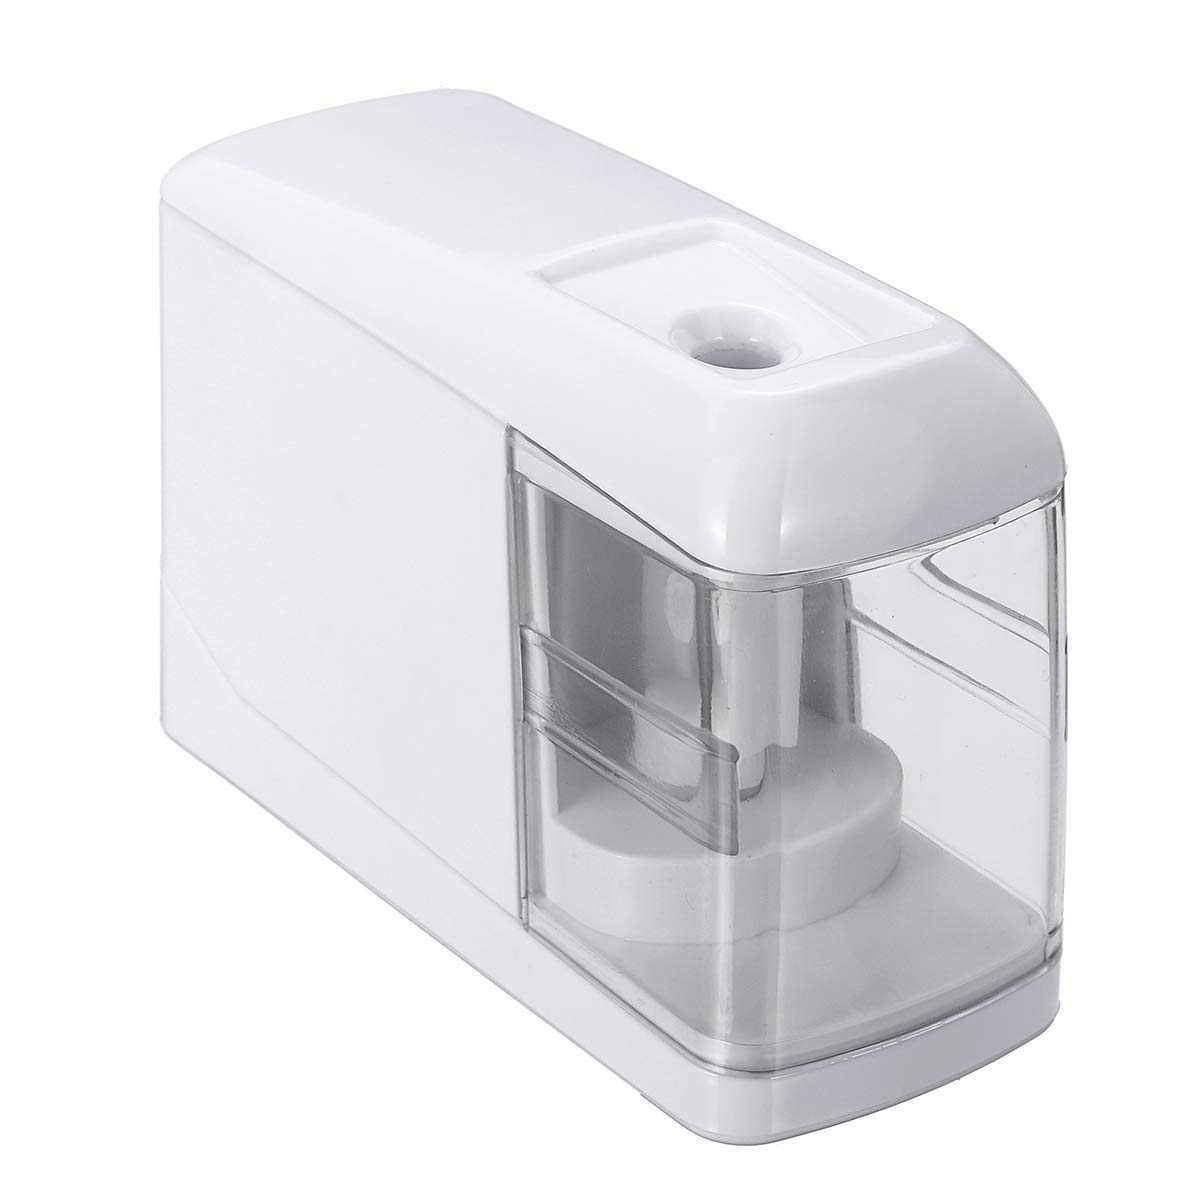 GEMITTO Electric Pencil Sharpener, Automatic Durable Portable Sharpeber Office School Classroom Home AC Adapter/USB/Battery Operated White GEMITTOOHBUS35678121296